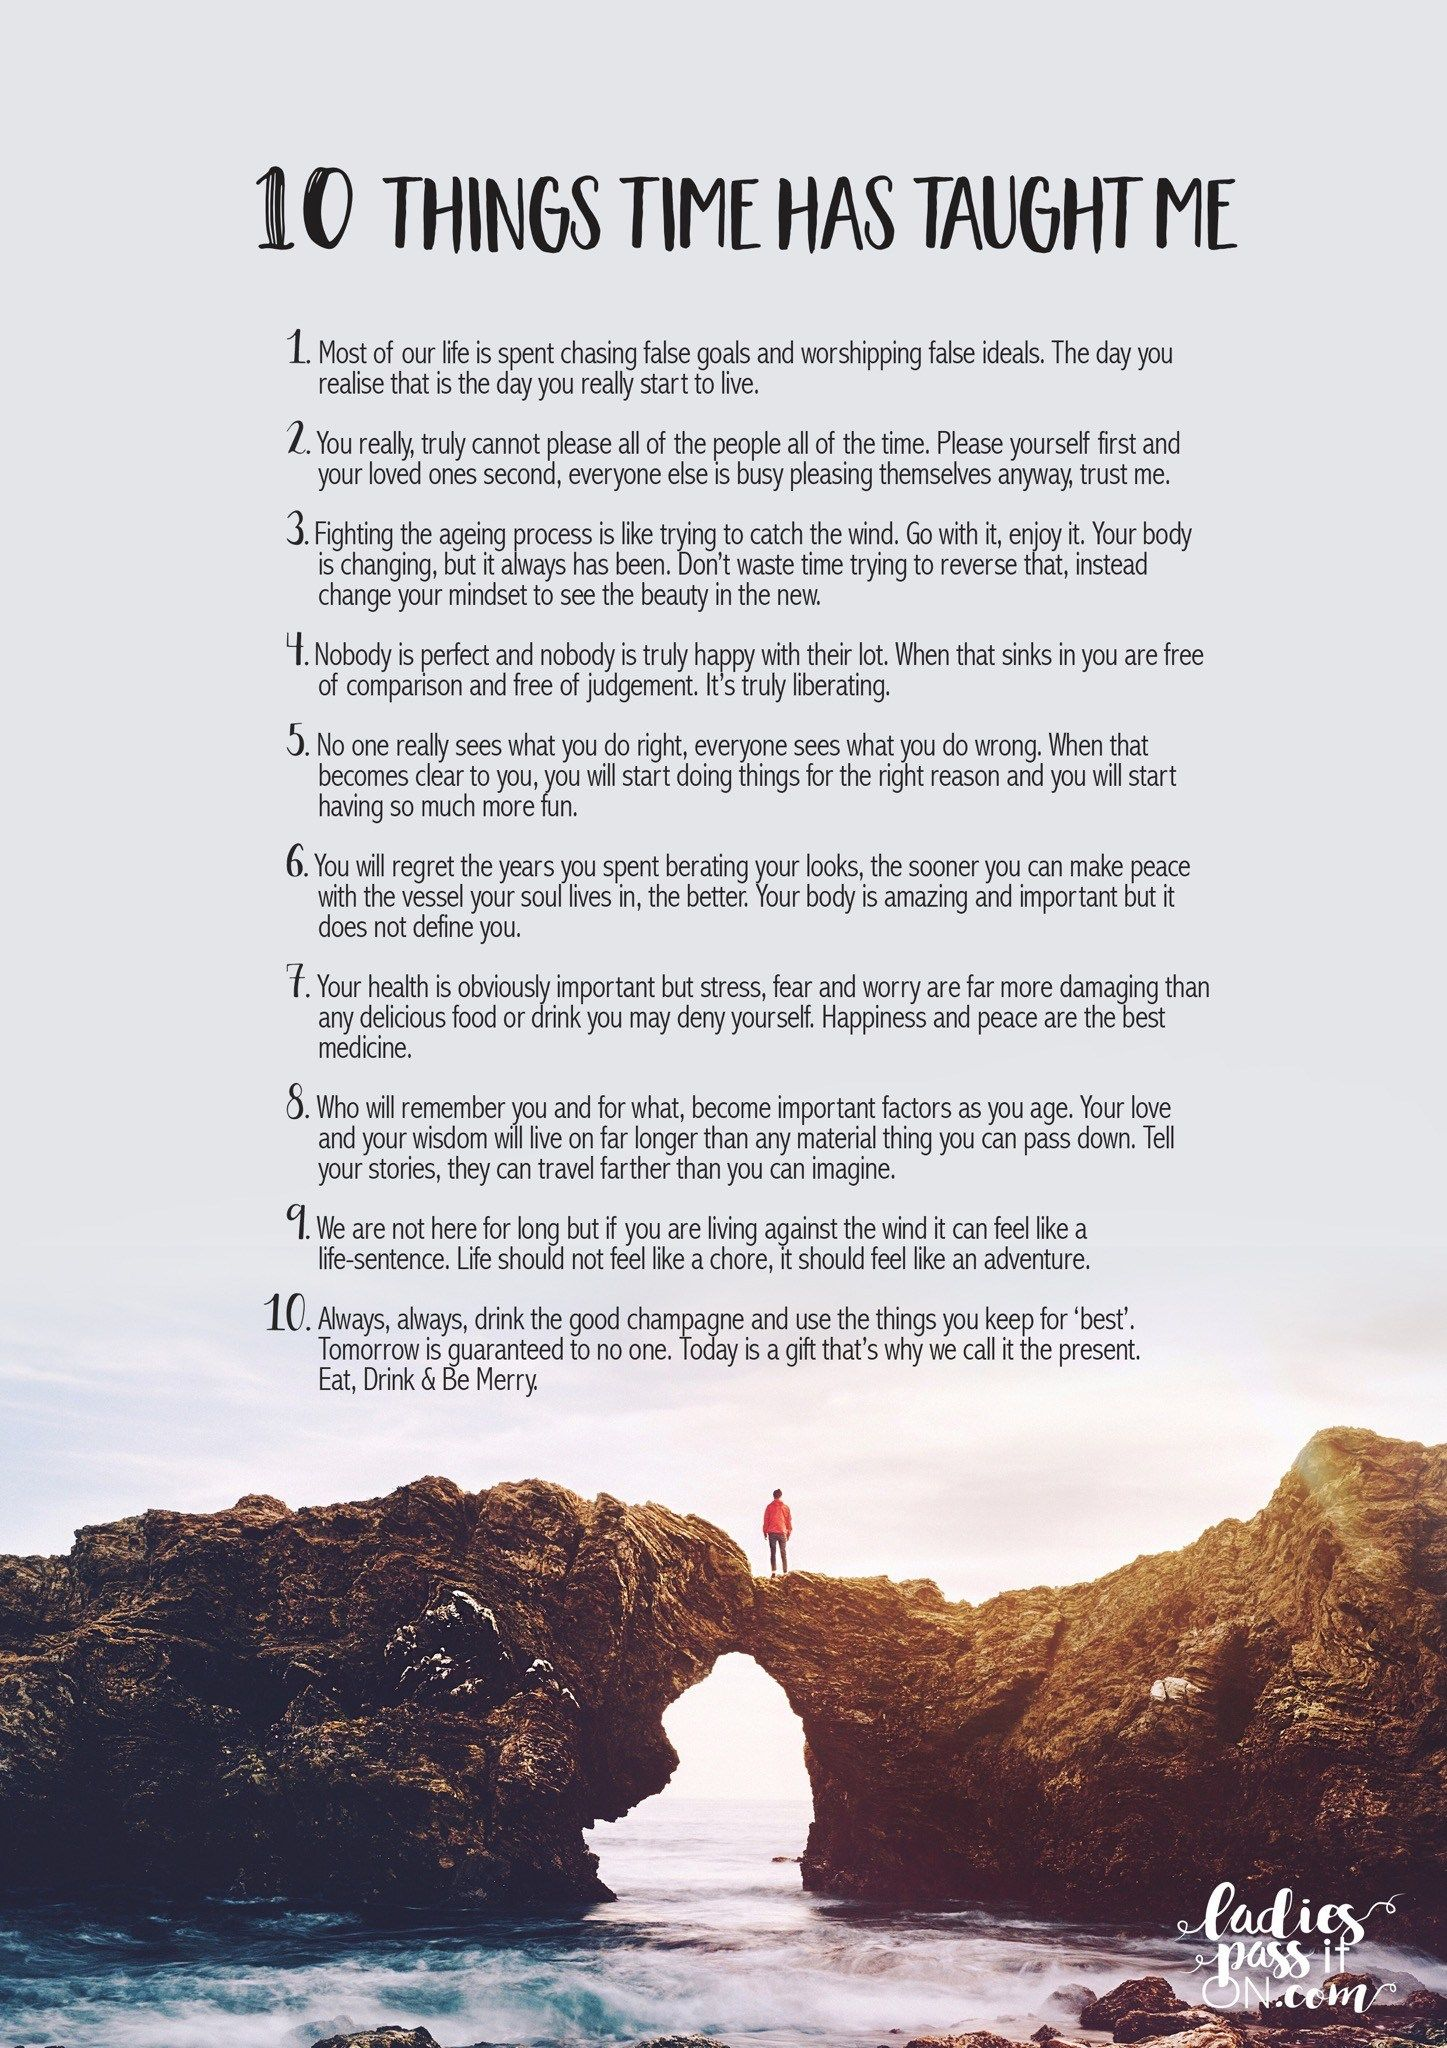 Words of wisdom for loving your life at every age: 10 THINGS TIME HAS  TAUGHT ME By Ali McGraw